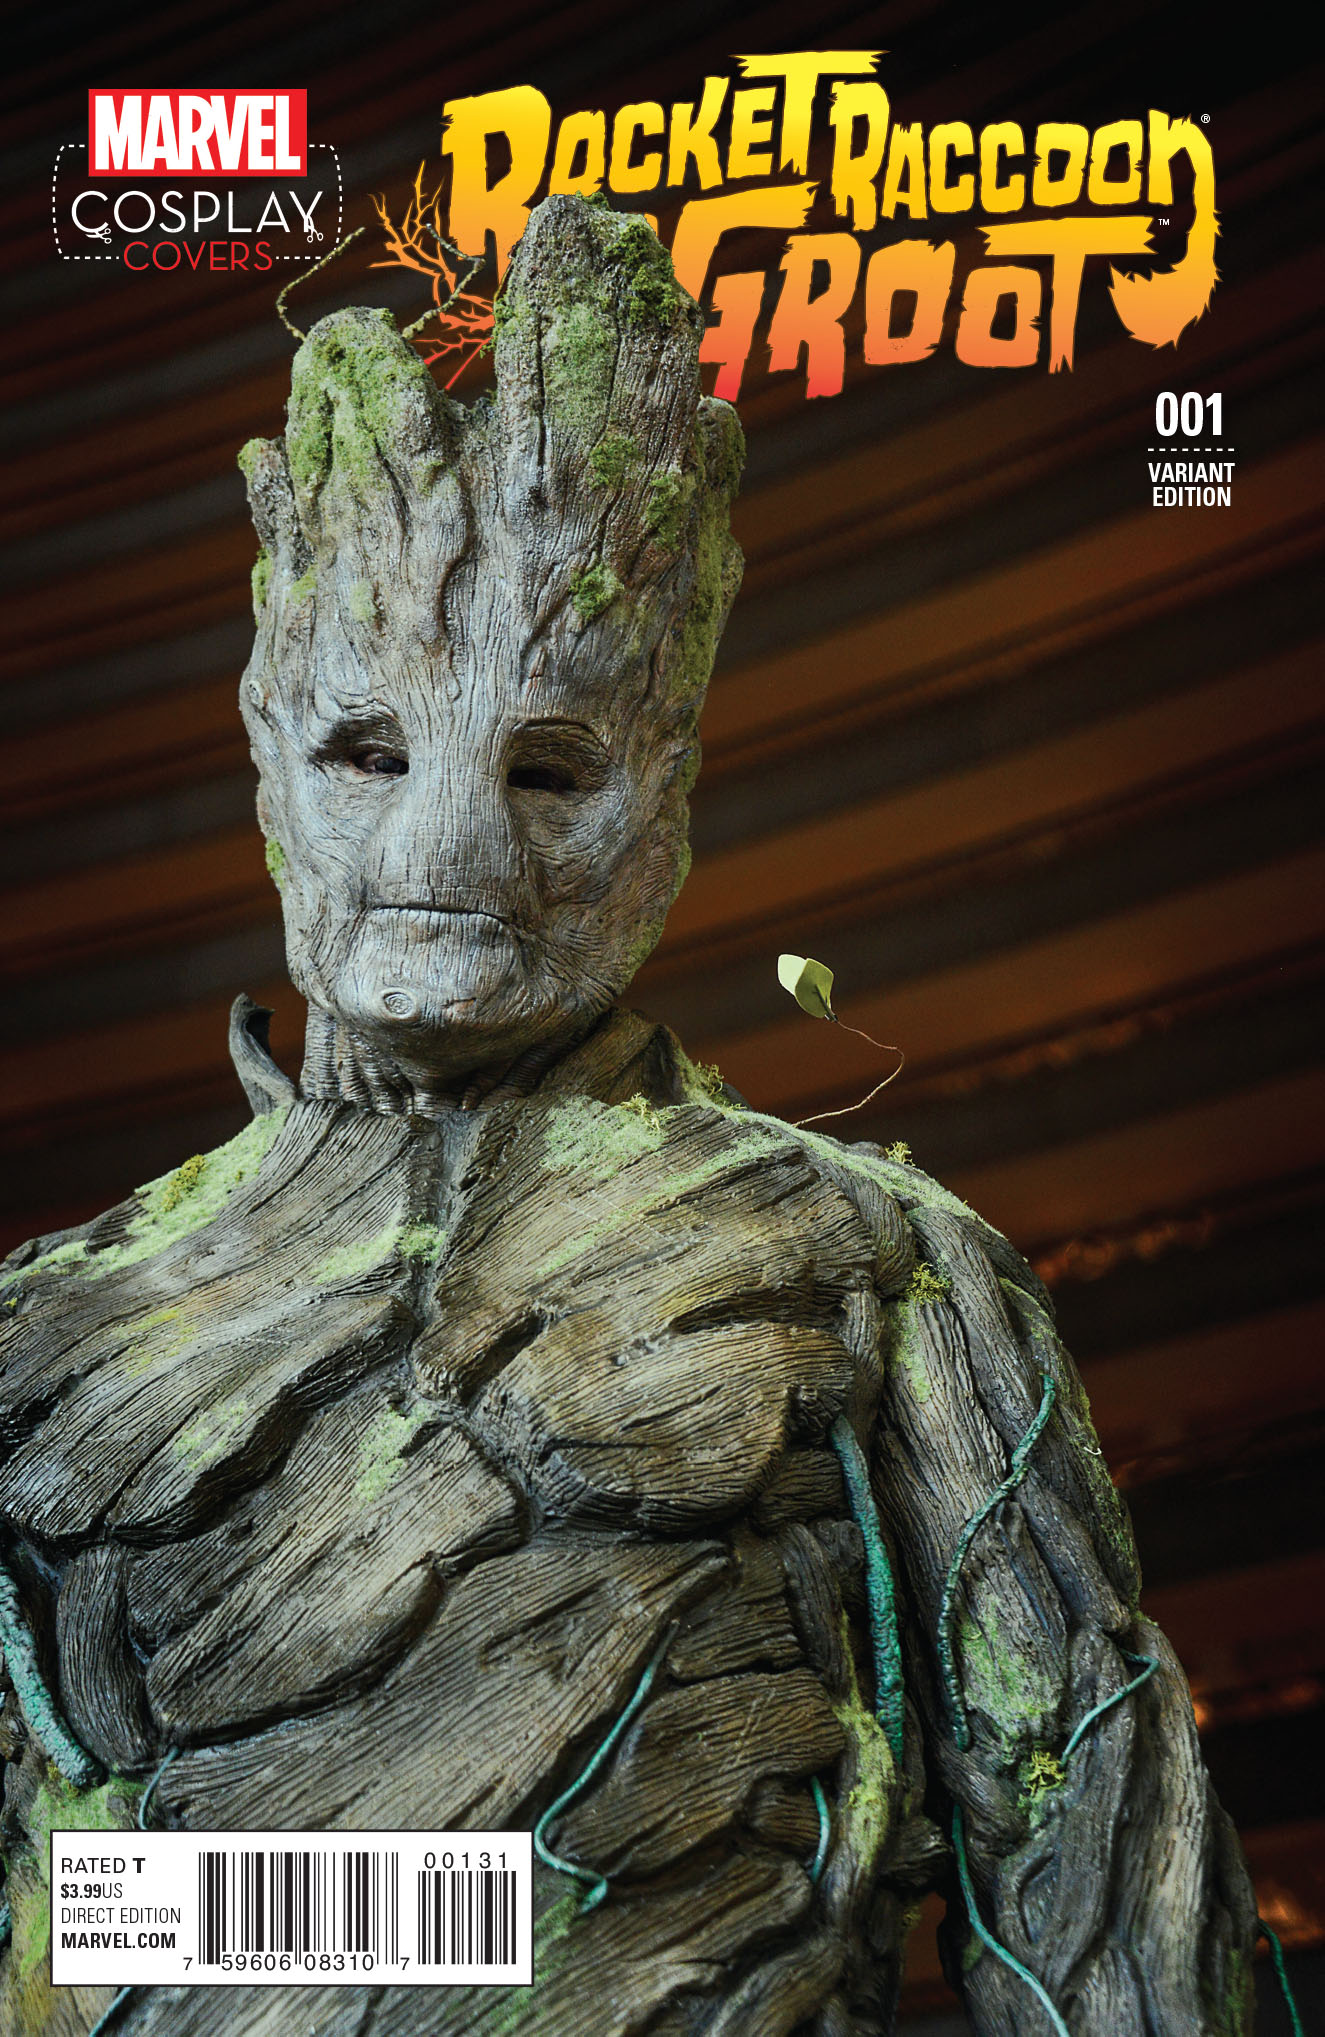 Rocket_Raccoon_and_Groot_1_Cosplay_Variant